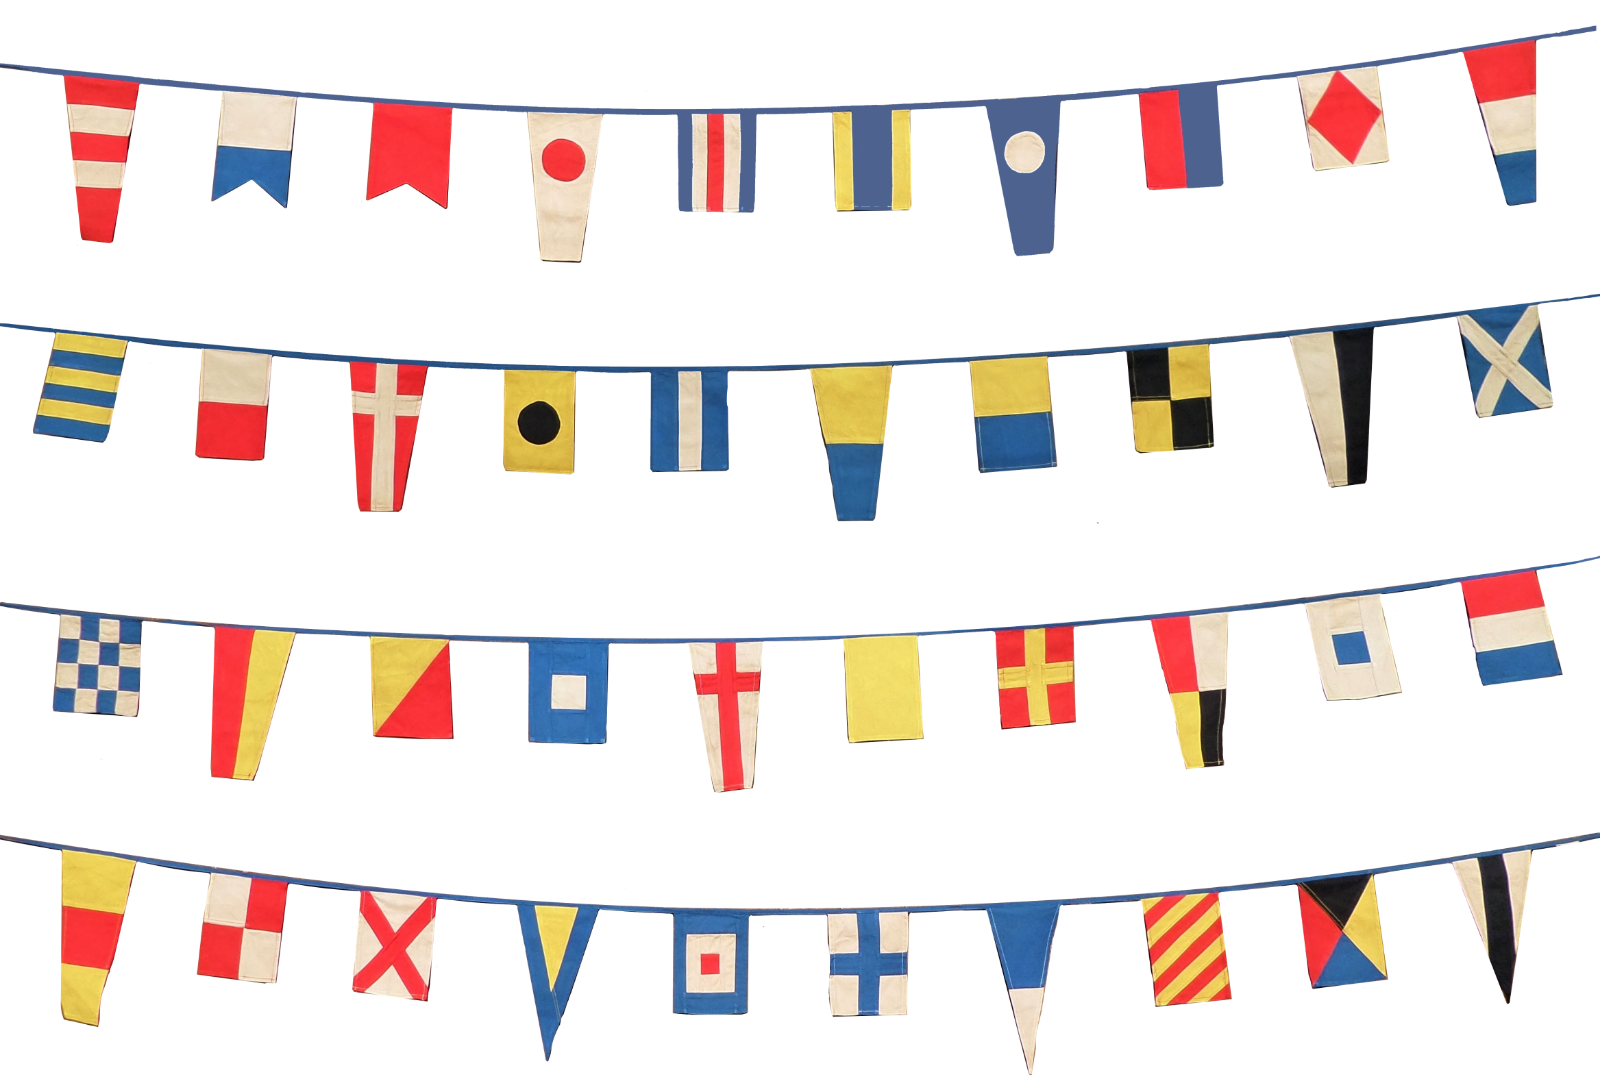 Nautical Signal Bunting 40 Flag, Fully Sewn Cotton Aged & Vintage-Look Set